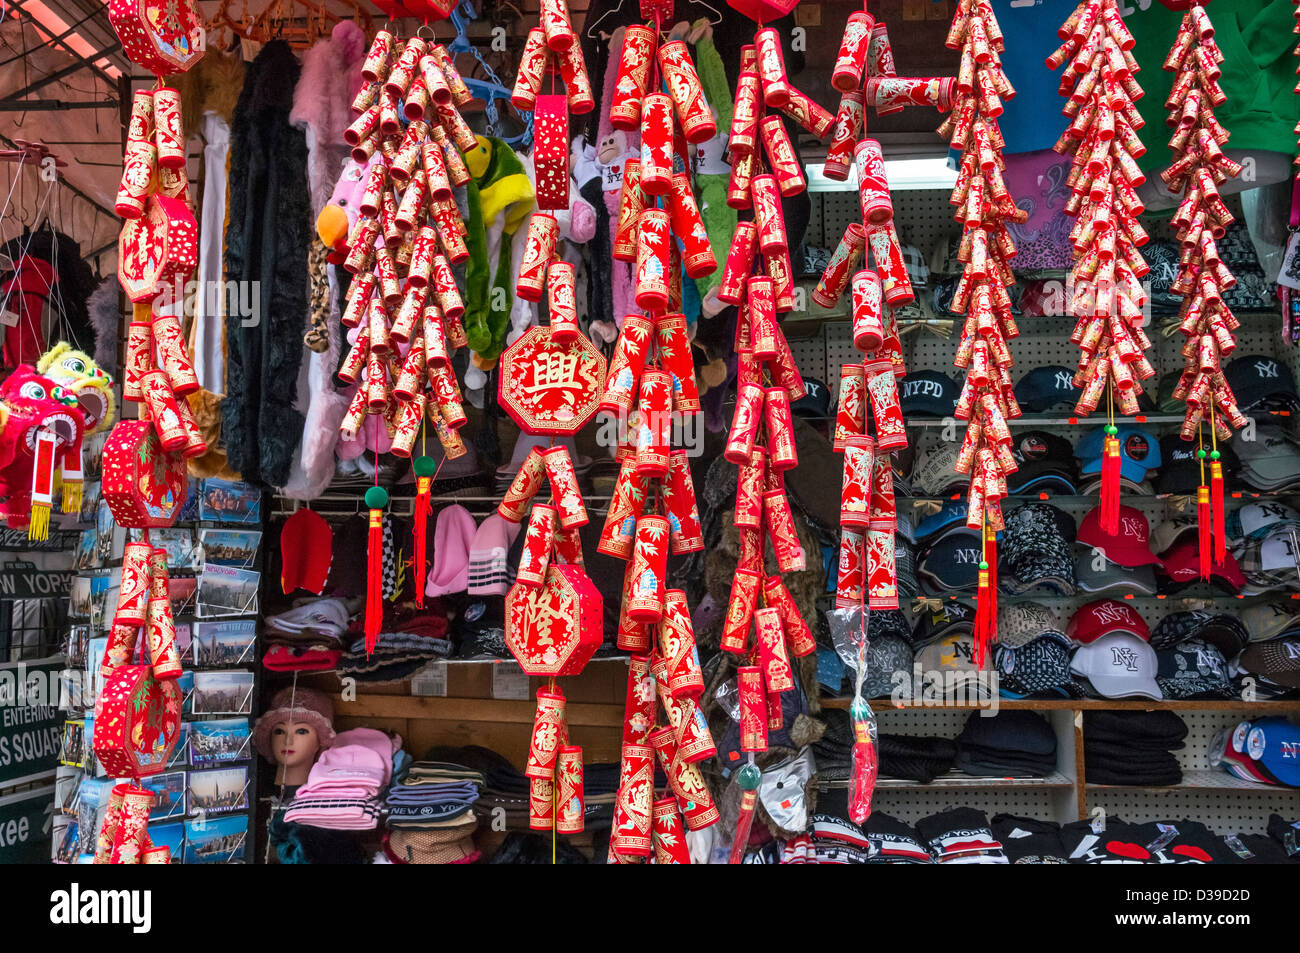 Chinese New Year Gifts Stock Photos & Chinese New Year Gifts